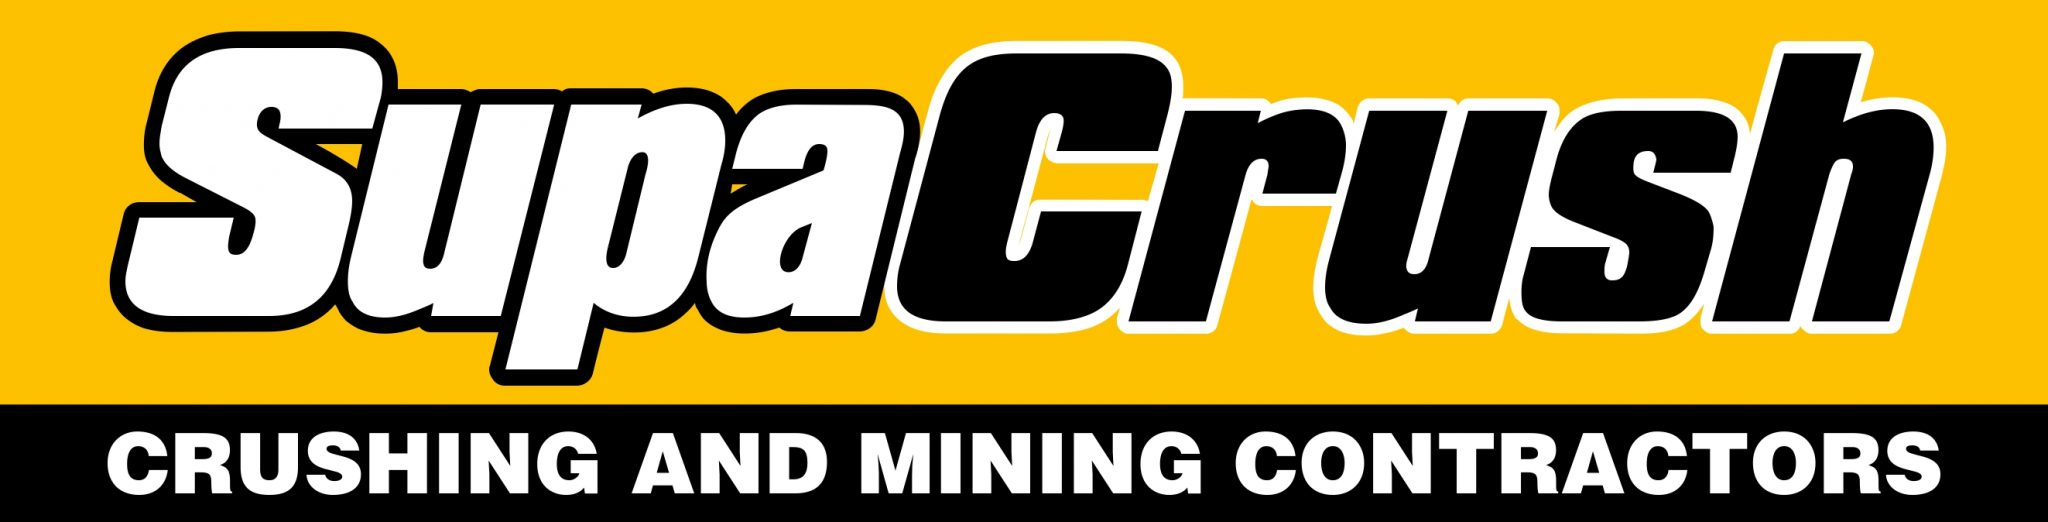 Supacrush Crushing & Mining Contractor Logo - Final